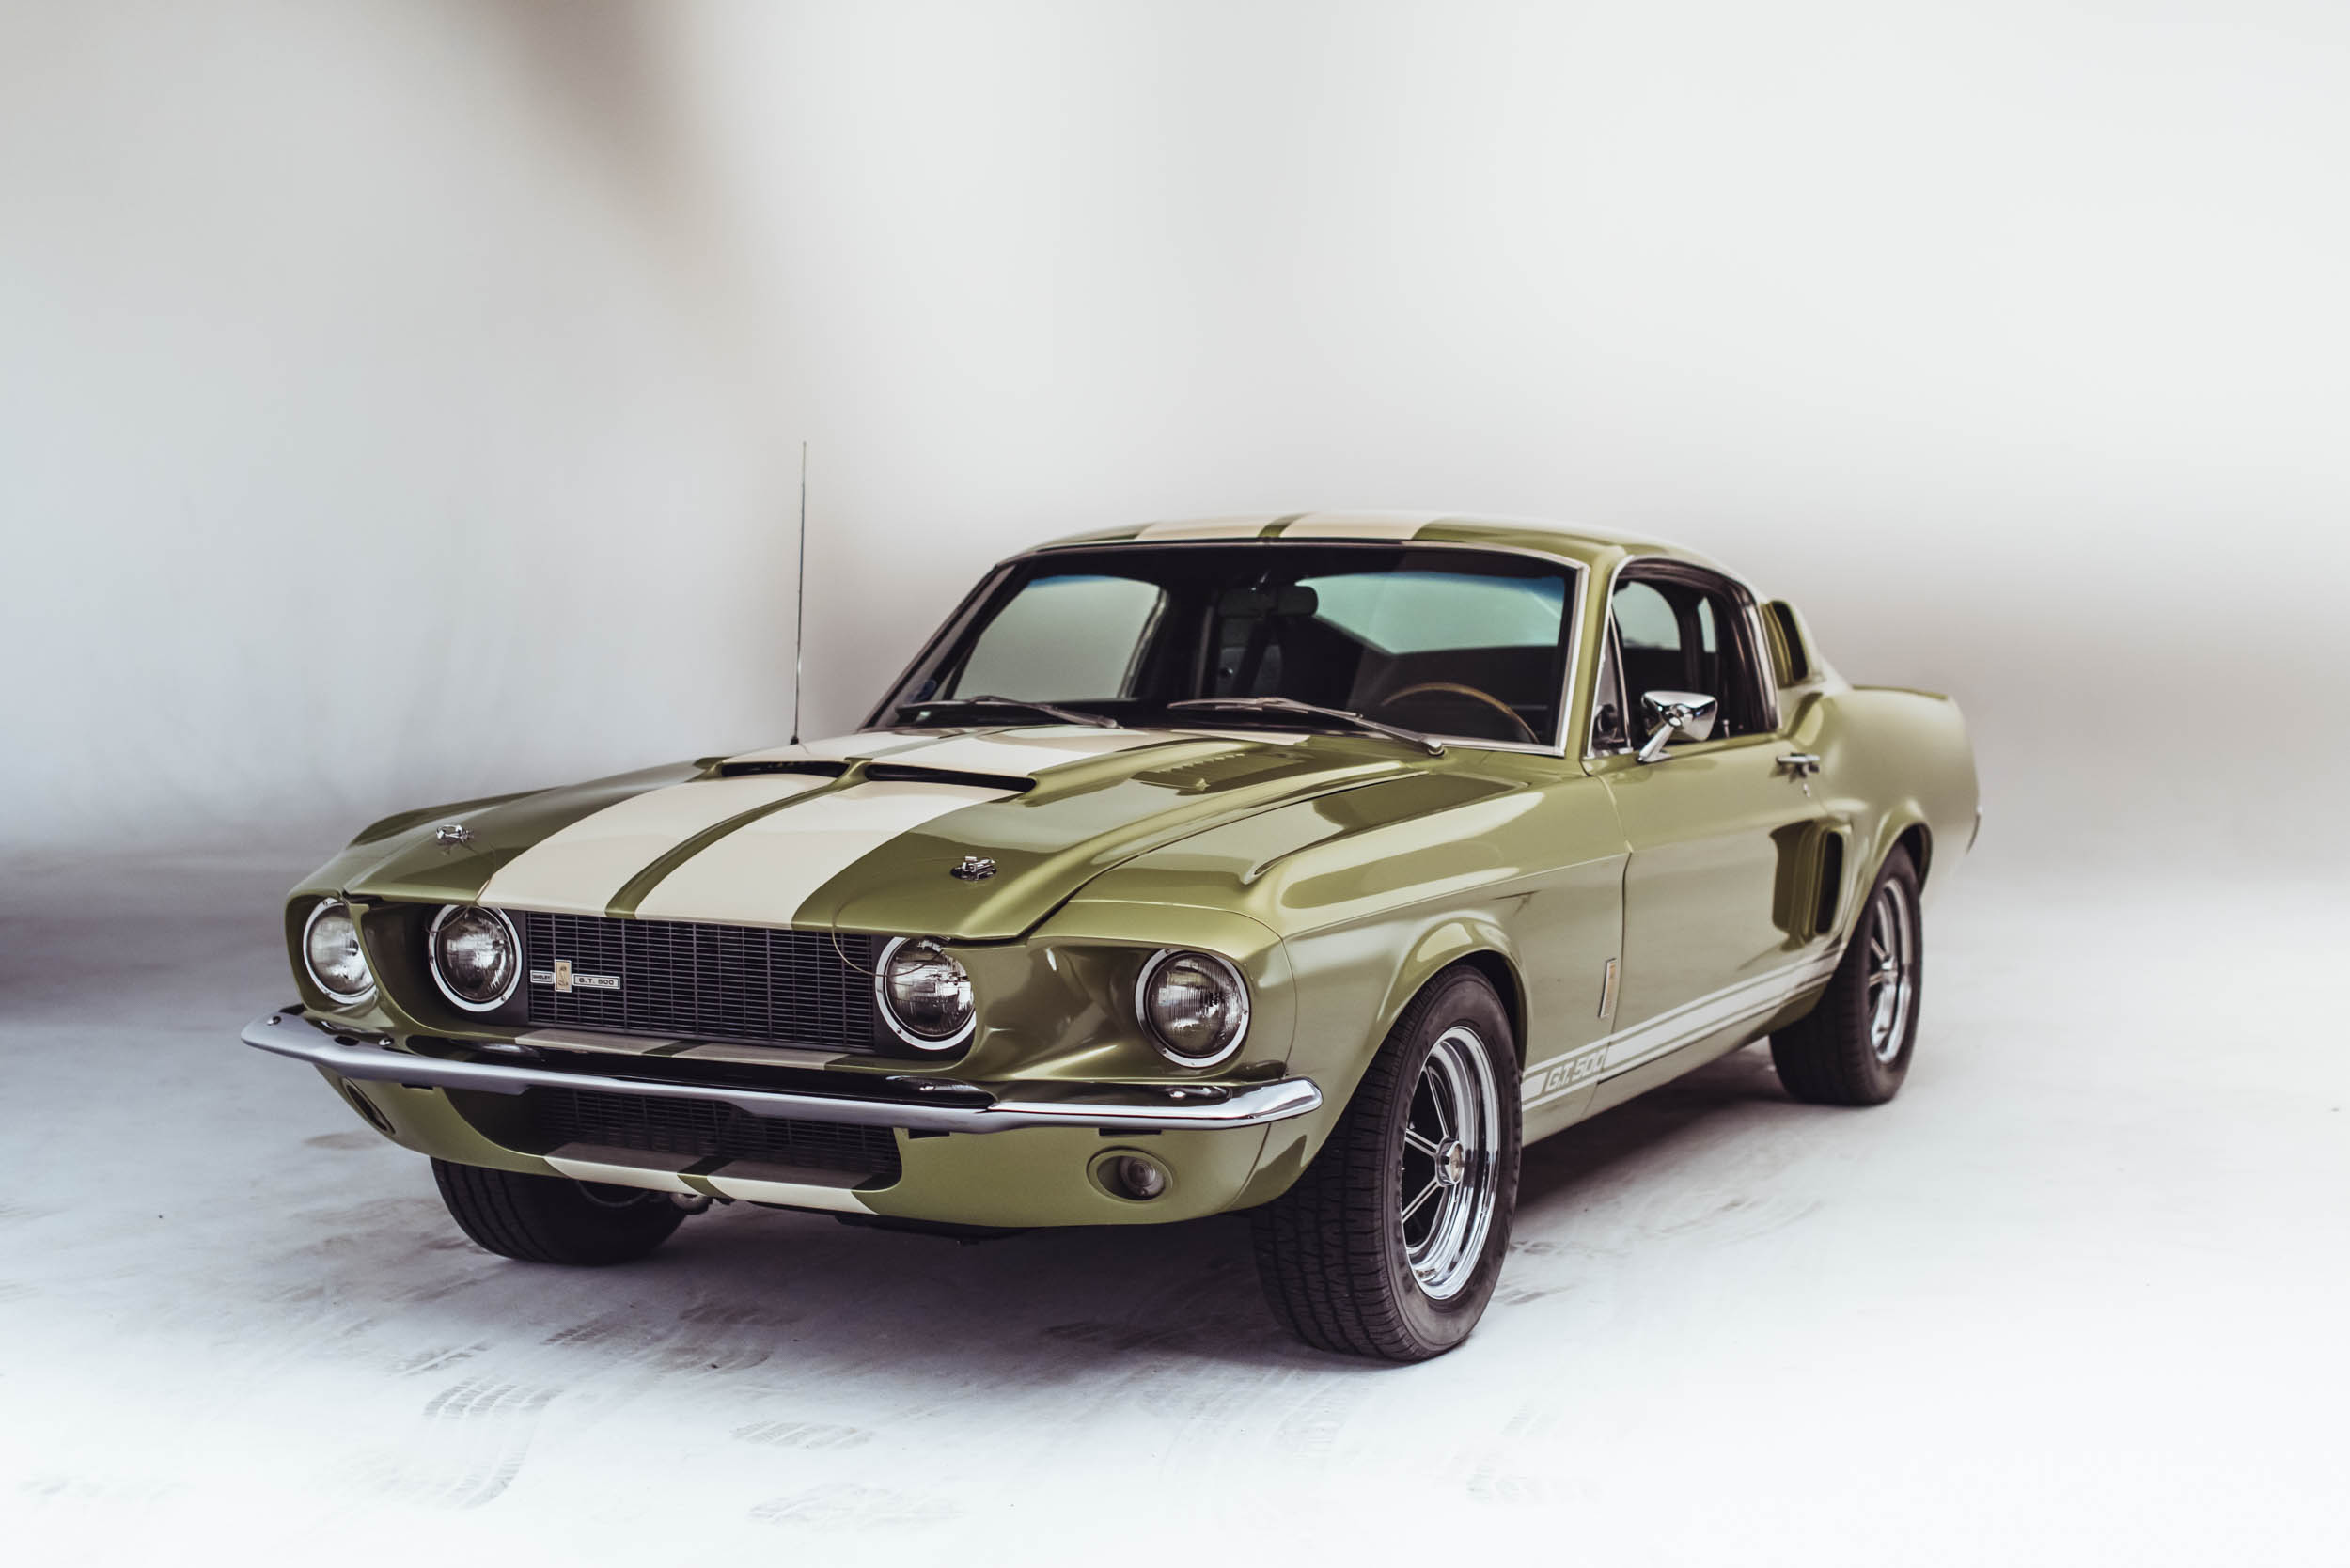 1967 Shelby GT500 front 3/4